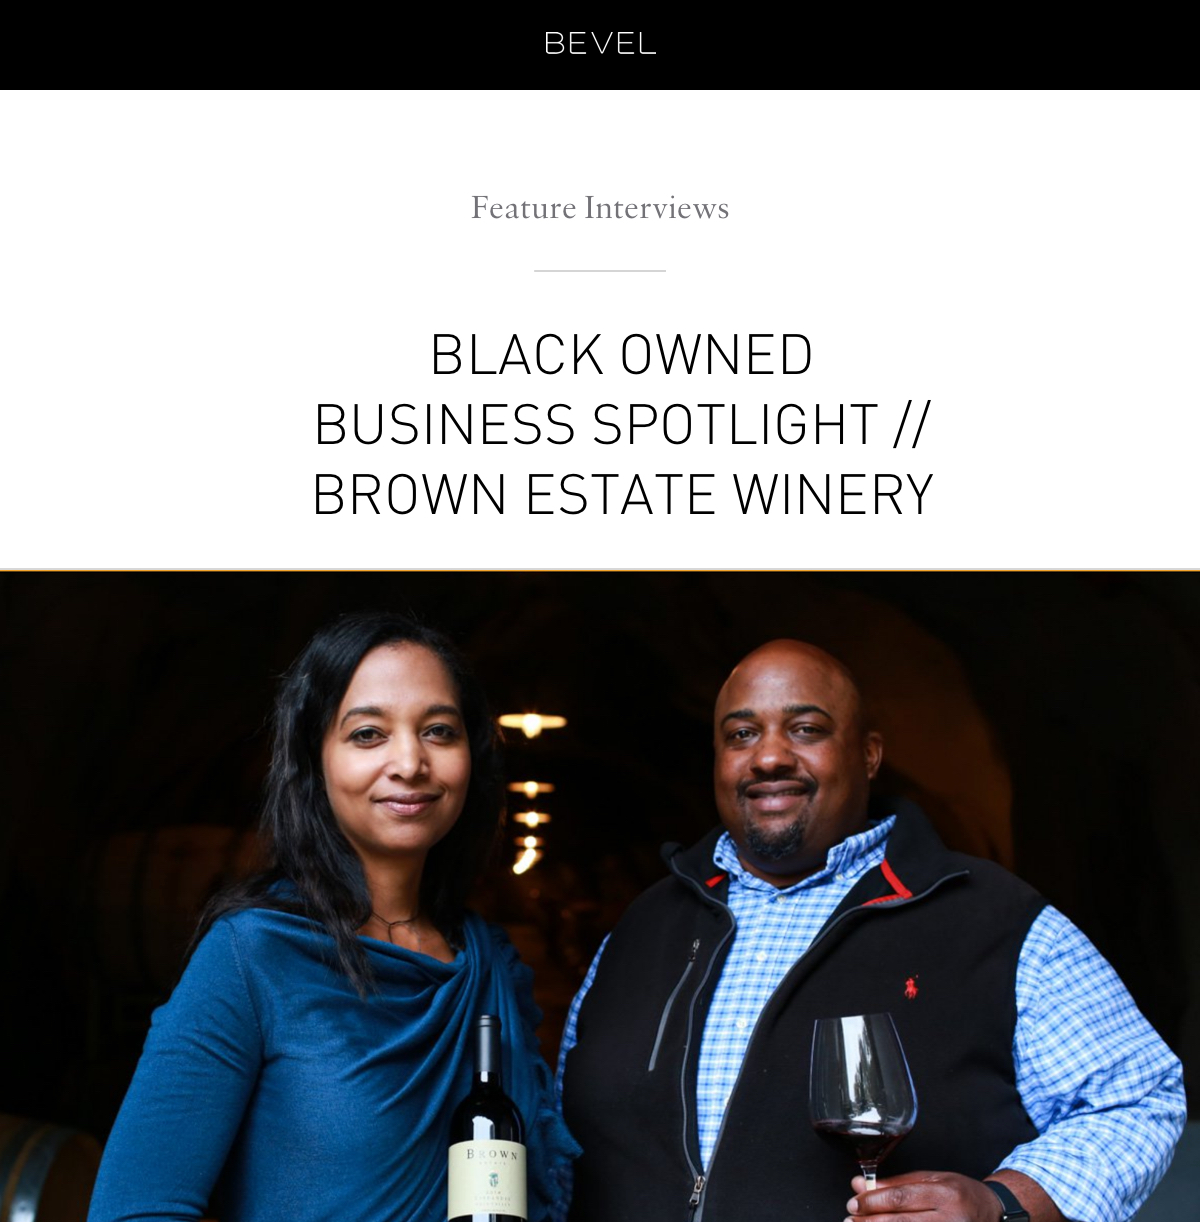 Feature Interviews: Brown Estate Winery